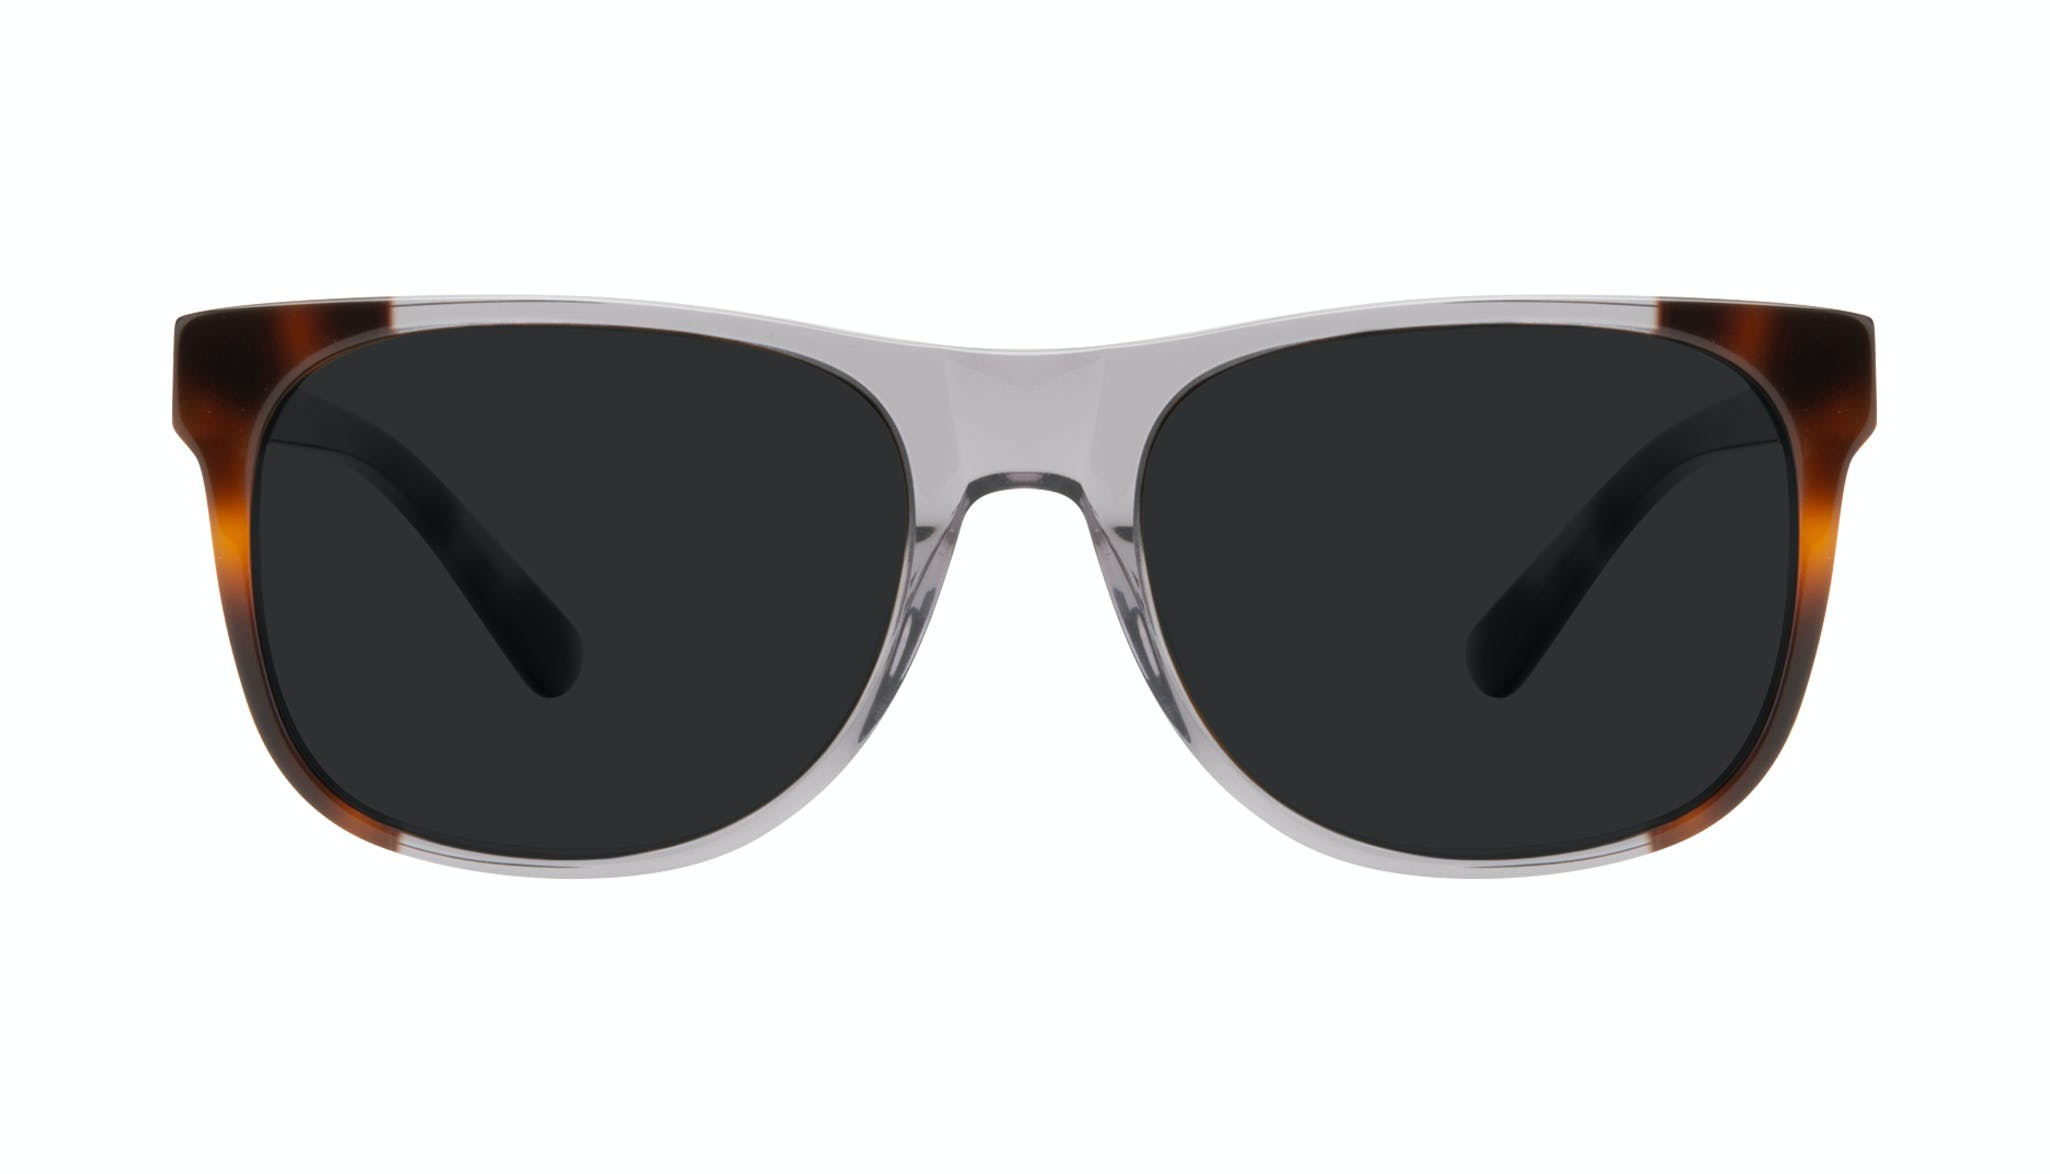 Affordable Fashion Glasses Square Sunglasses Men Make Smokey Tort